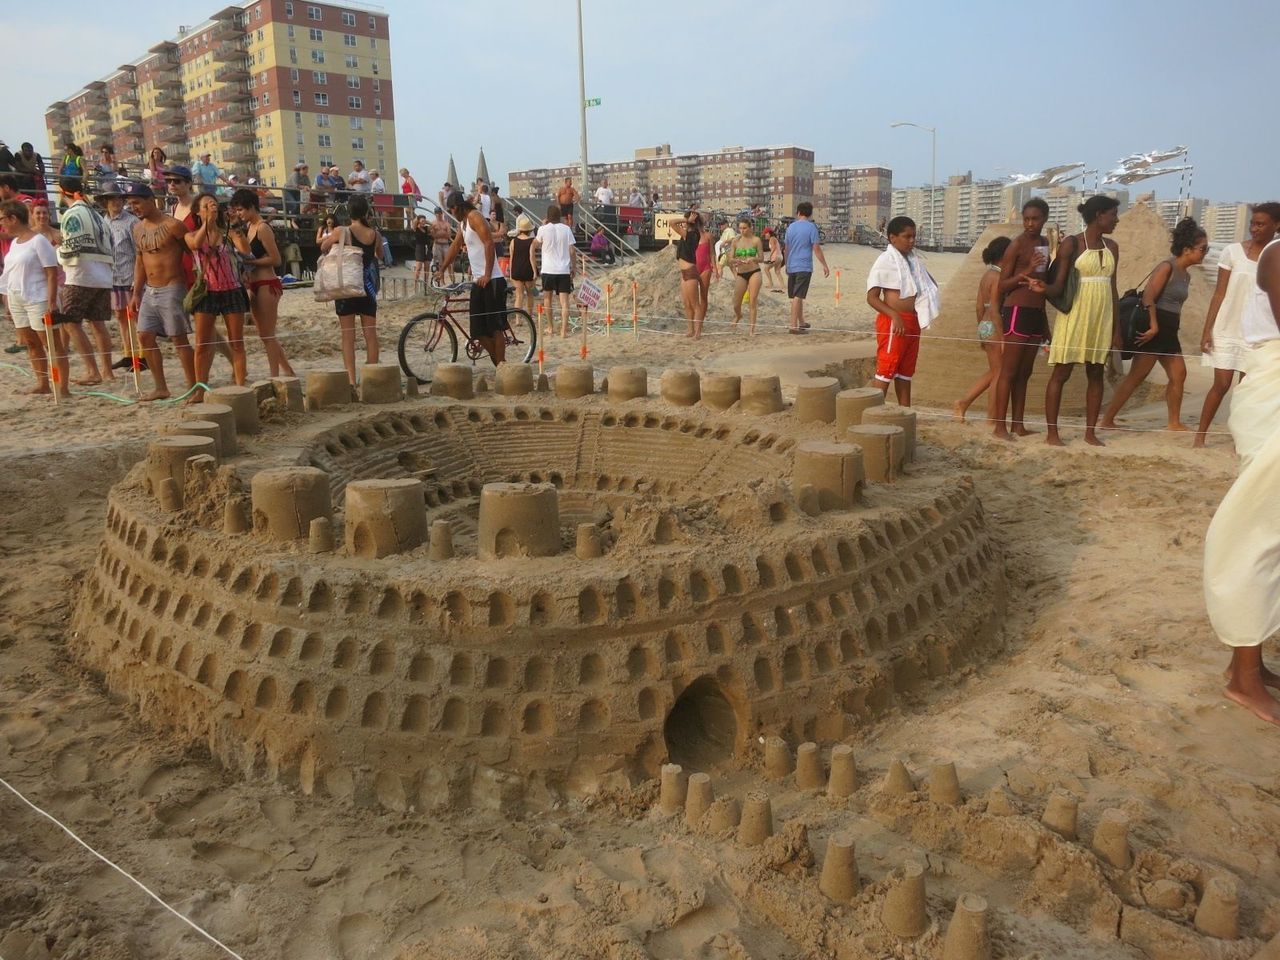 Art on the Beach!  Looks like Rome was built in a day! A sand-castle Colosseum, created by a team led by Marie Lorenz, was one of the entries in the festive artists' sand-castle competition staged by last Friday by the public-art organization Creative Time, in collaboration with Grey Area.  By mid-afternoon, a parade of artists bearing bizarre materials had materialized on Beach 86th Street, intriguing passersby as they began digging holes, building piles, burying their colleagues, and tenderly sculpting the beach's distinctive dusty grains of sand into ambitious, elaborate, and often whimsical concoctions that celebrated this venerable vernacular tradition. I was among the judges who faced the challenge of awarding prizes to the most impressive entries. We gave top honors to Jen Catron & Paul Outlaw for their Fountain. This castle was a whimsical structure on which the artists' team posed with a neo-vaudeville flourish, spouting Poland Spring water from their mouths in a deadpan manner that recalled everyone's favorite Baroque sculptures (with a sly wink to Bruce Nauman's sly wink to modernism's most famous Fountain, by Duchamp).    Second went to William Lamson for a huge, flawless cone, a kind of grown-up version of those rickety turrets kids make with plastic cups—though the artist noted that his inspiration also came from the elegant post-Minimalist forms of Japanese Mono-ha.  And third went to Jen DeNike for Castles in the Sand, a female form that seems to spring out of a dream (and a Hendrix song) onto the sand, reaching for an elusive structure destined to fall into the sea.  There were a lot of other striking pieces, including Tom Sachs' dig to almost-China and Ricci Albenda's pyramidlike wall with a slight Ozymandias complex.   By now, all of the sculptures have been blown away, trampled by dogs, and reconstituted by seagulls. But I wouldn't be surprised if their influence lingers in the air. Look for their echoes on the shore—and for the next round of entries next year!   Photo: Mista Oh!